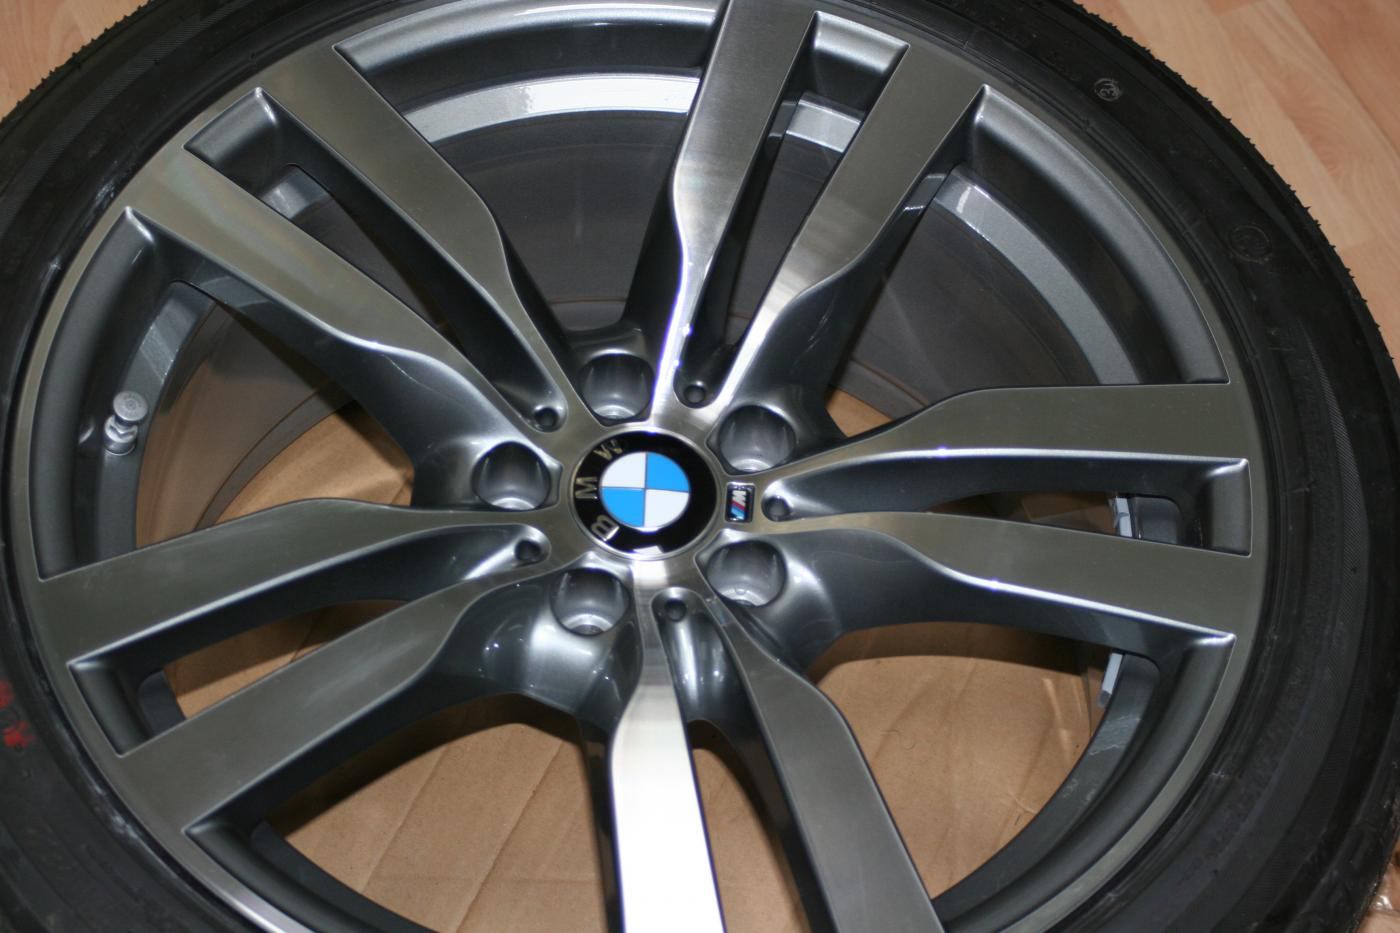 "BMW X6///M OEM Forged Performance Wheels+RFT tires +TPMS - 20"", 275 front, 315 rears - Xoutpost.com"